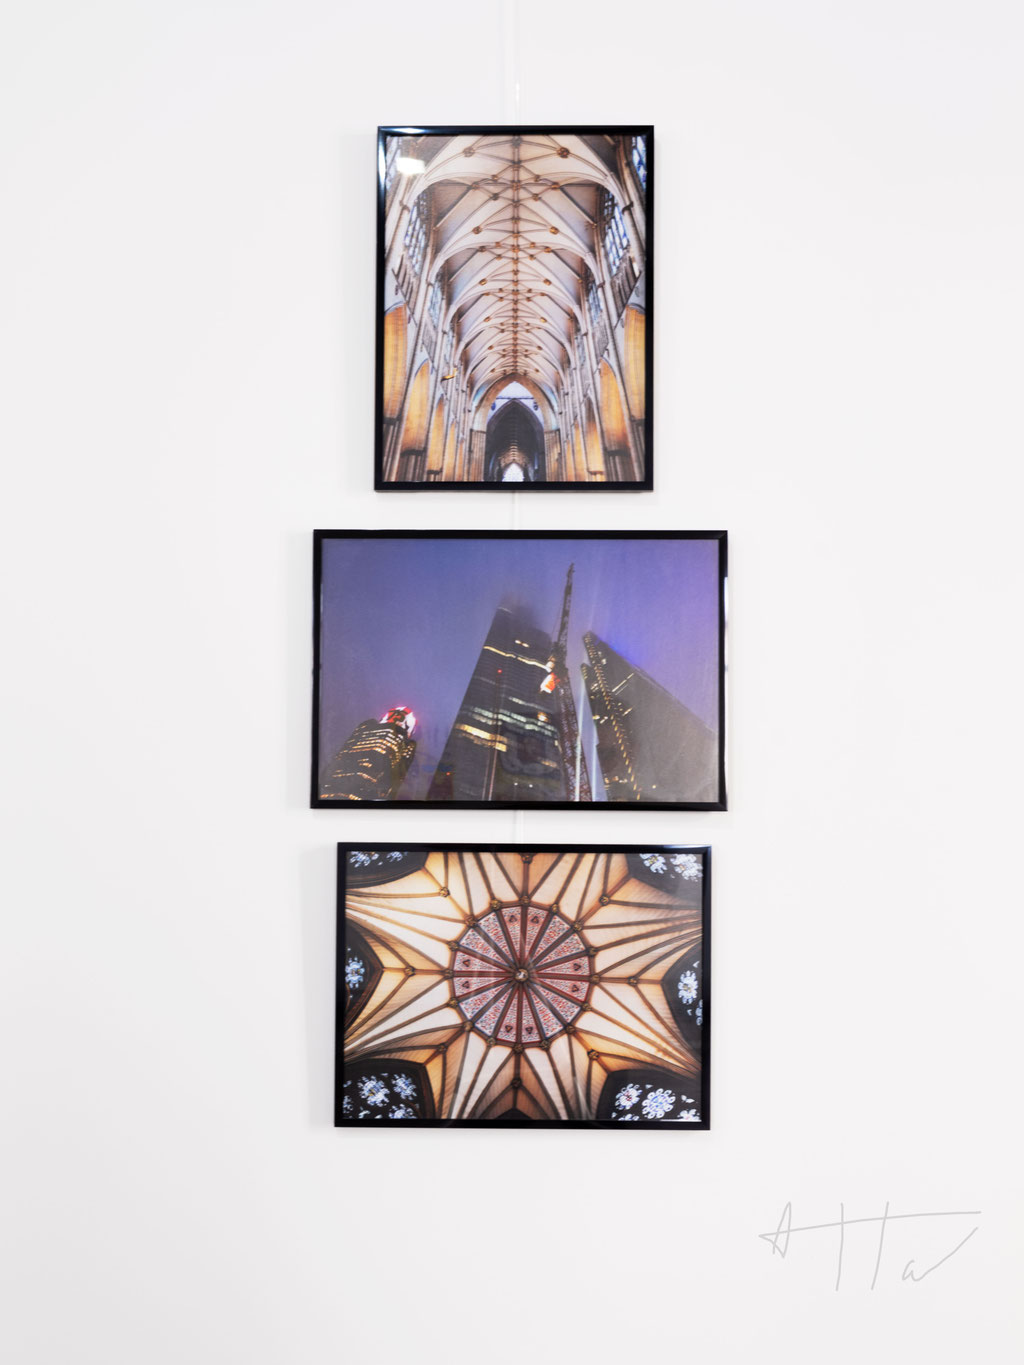 From top to bottom: Cathedral de York 1 (30x40 cm), Londres de nuit (30x45 cm), Cathedral de York 2 (40x30 cm), framed matt print, series of 5 prints + 2 AP. (each artwork).